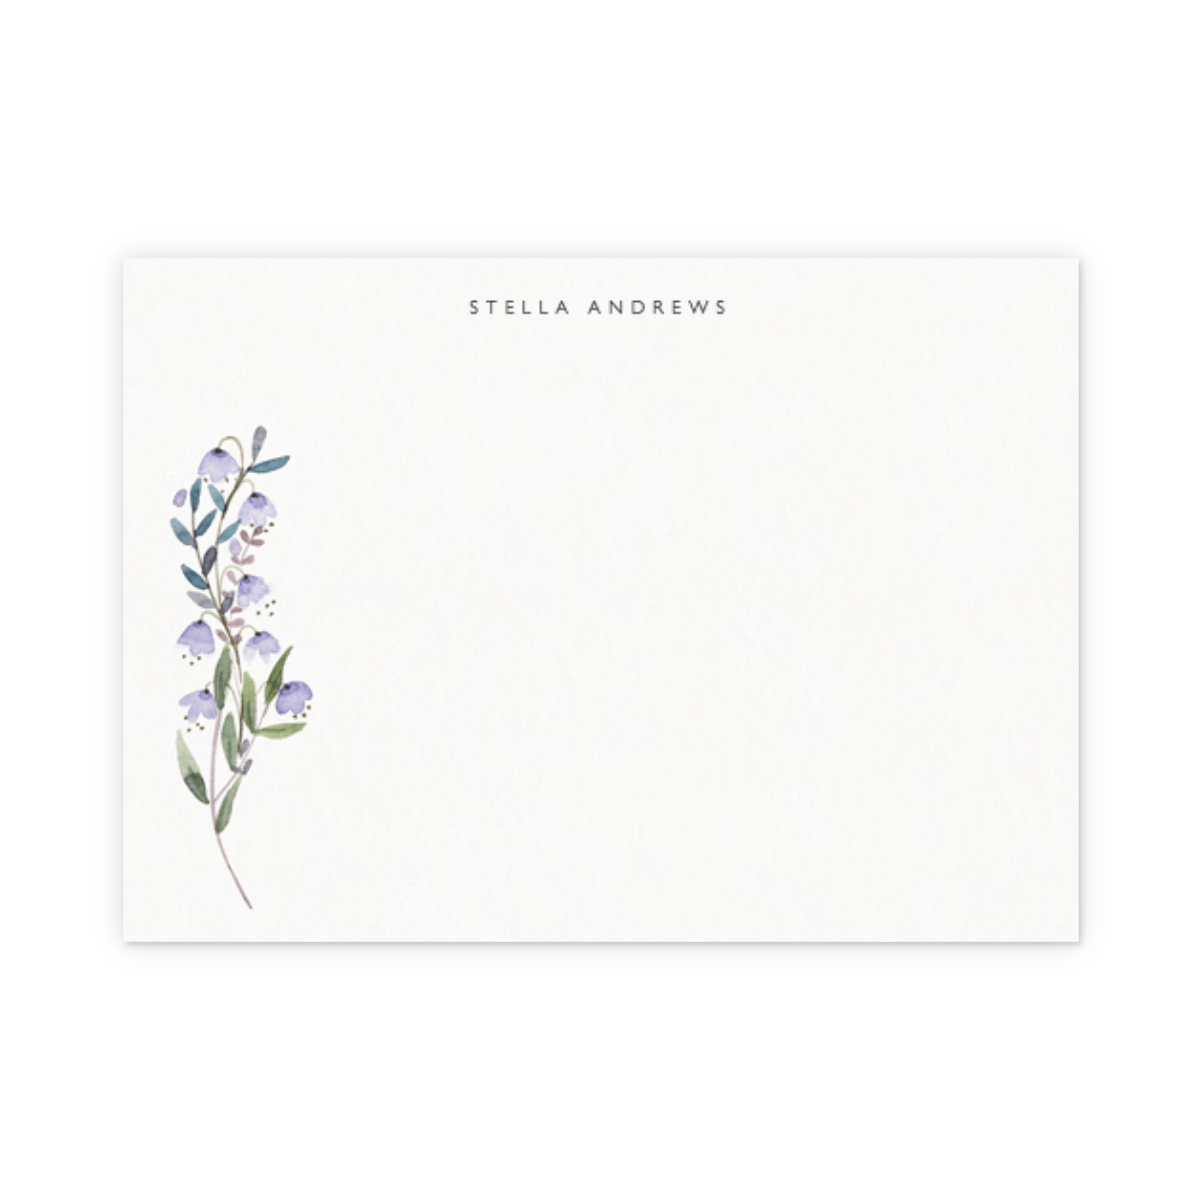 Https%3a%2f%2fwww.papier.com%2fproduct image%2f33833%2f10%2fspring wildflowers 8455 front 1534868265.png?ixlib=rb 1.1